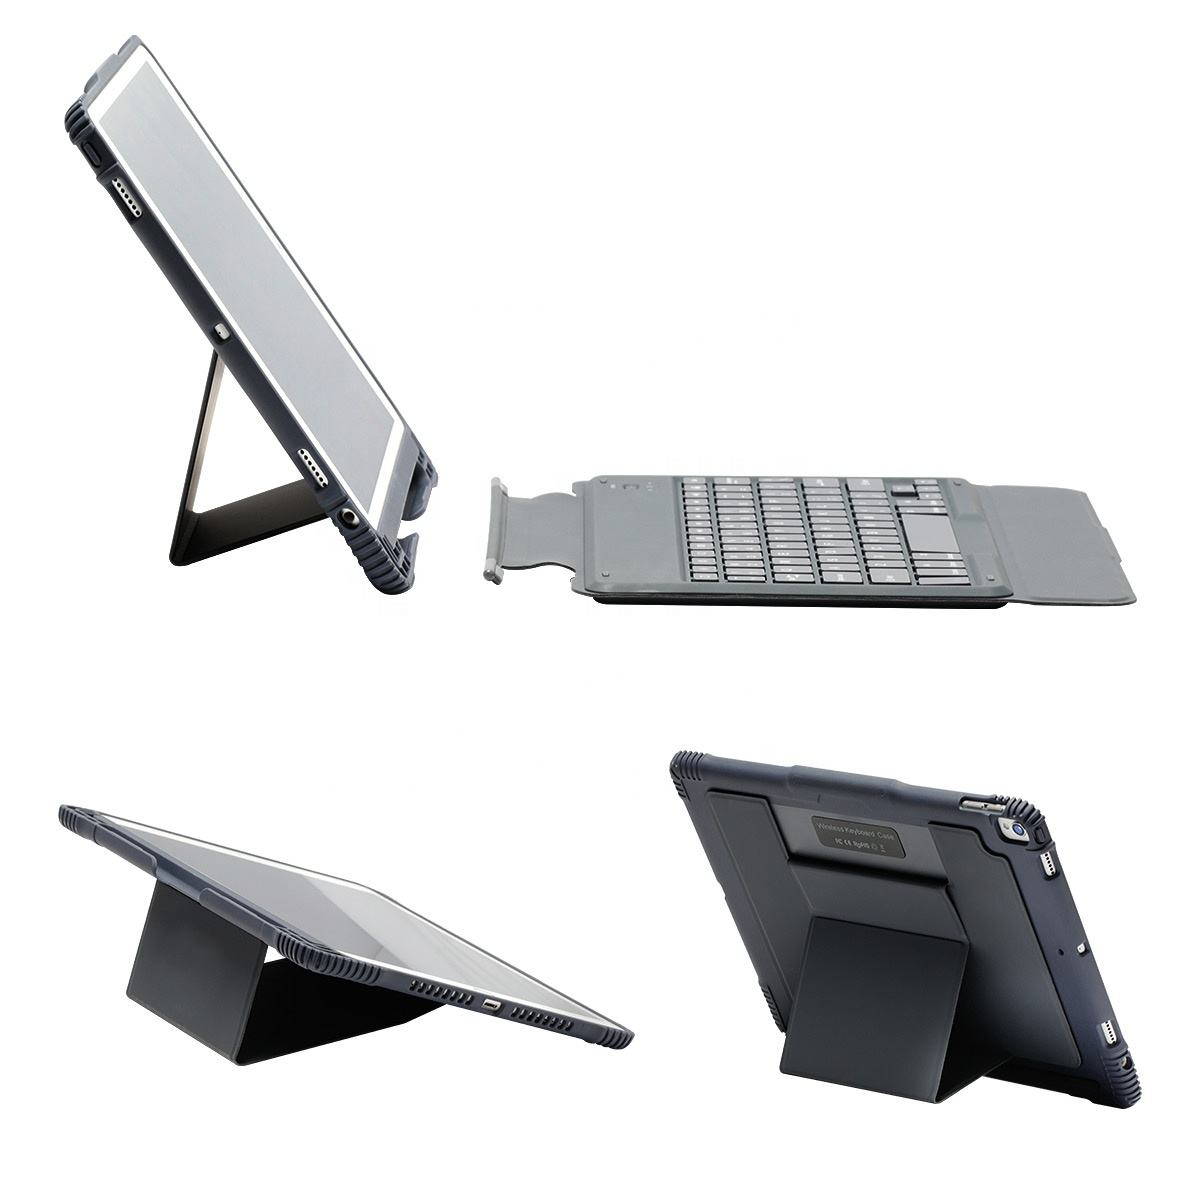 High quality Universal 10.5 10.2 inch wireless keyboard tablet cover shockproof rugged case